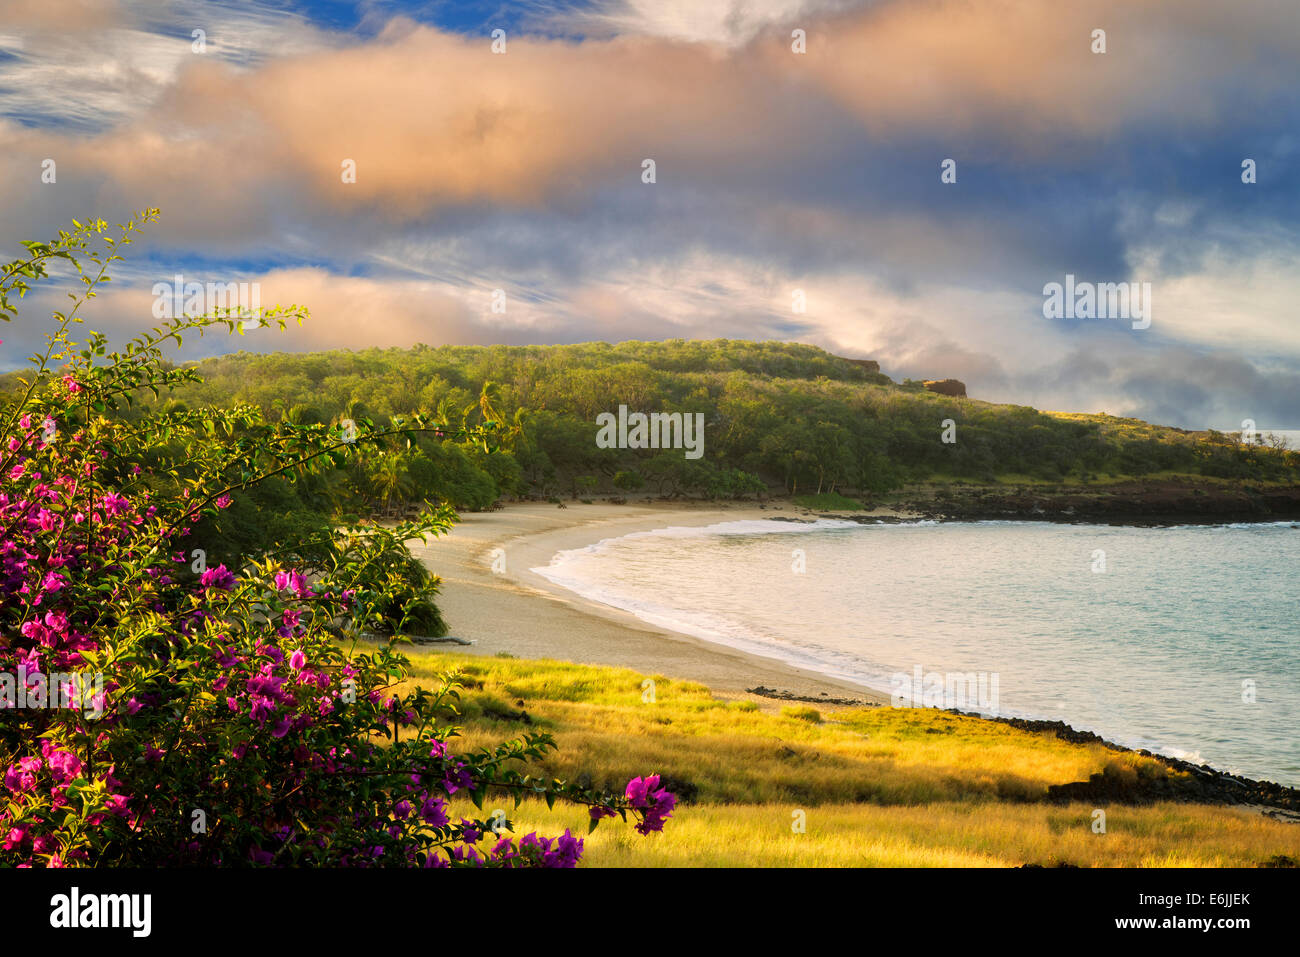 Beach at Four Seasons with Bougainvillea flowers. Lanai, Hawaii. - Stock Image